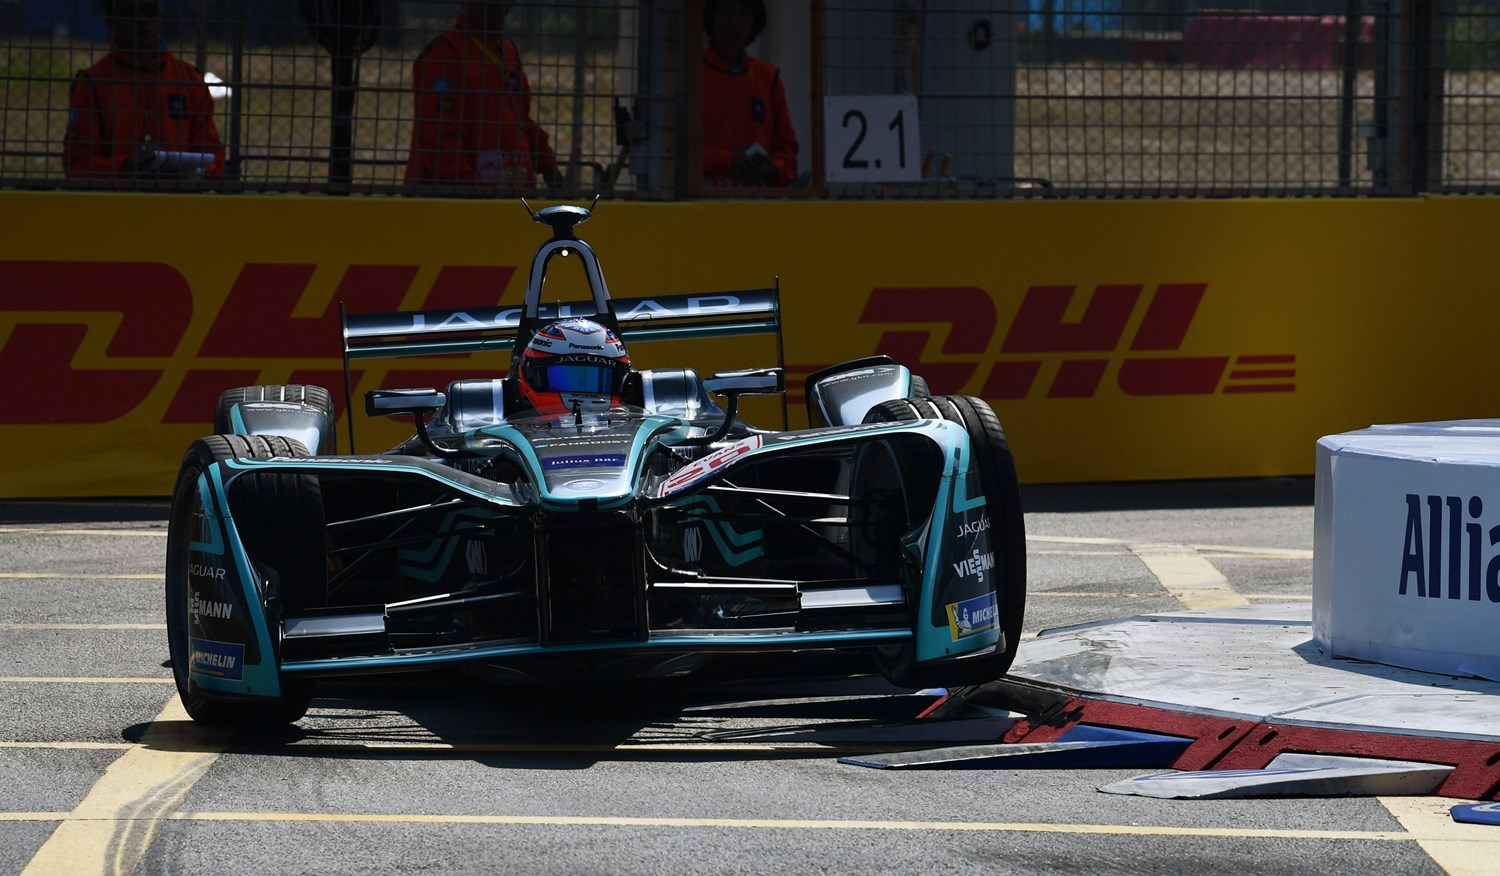 2017/2018 FIA Formula E Championship. Round 2 - Hong Kong, China. Sunday 03 November 2017. Mitch Evans (NZL), Panasonic Jaguar Racing, Jaguar I-Type II. Photo: Mark Sutton/LAT/Formula E ref: Digital Image DSC_4643